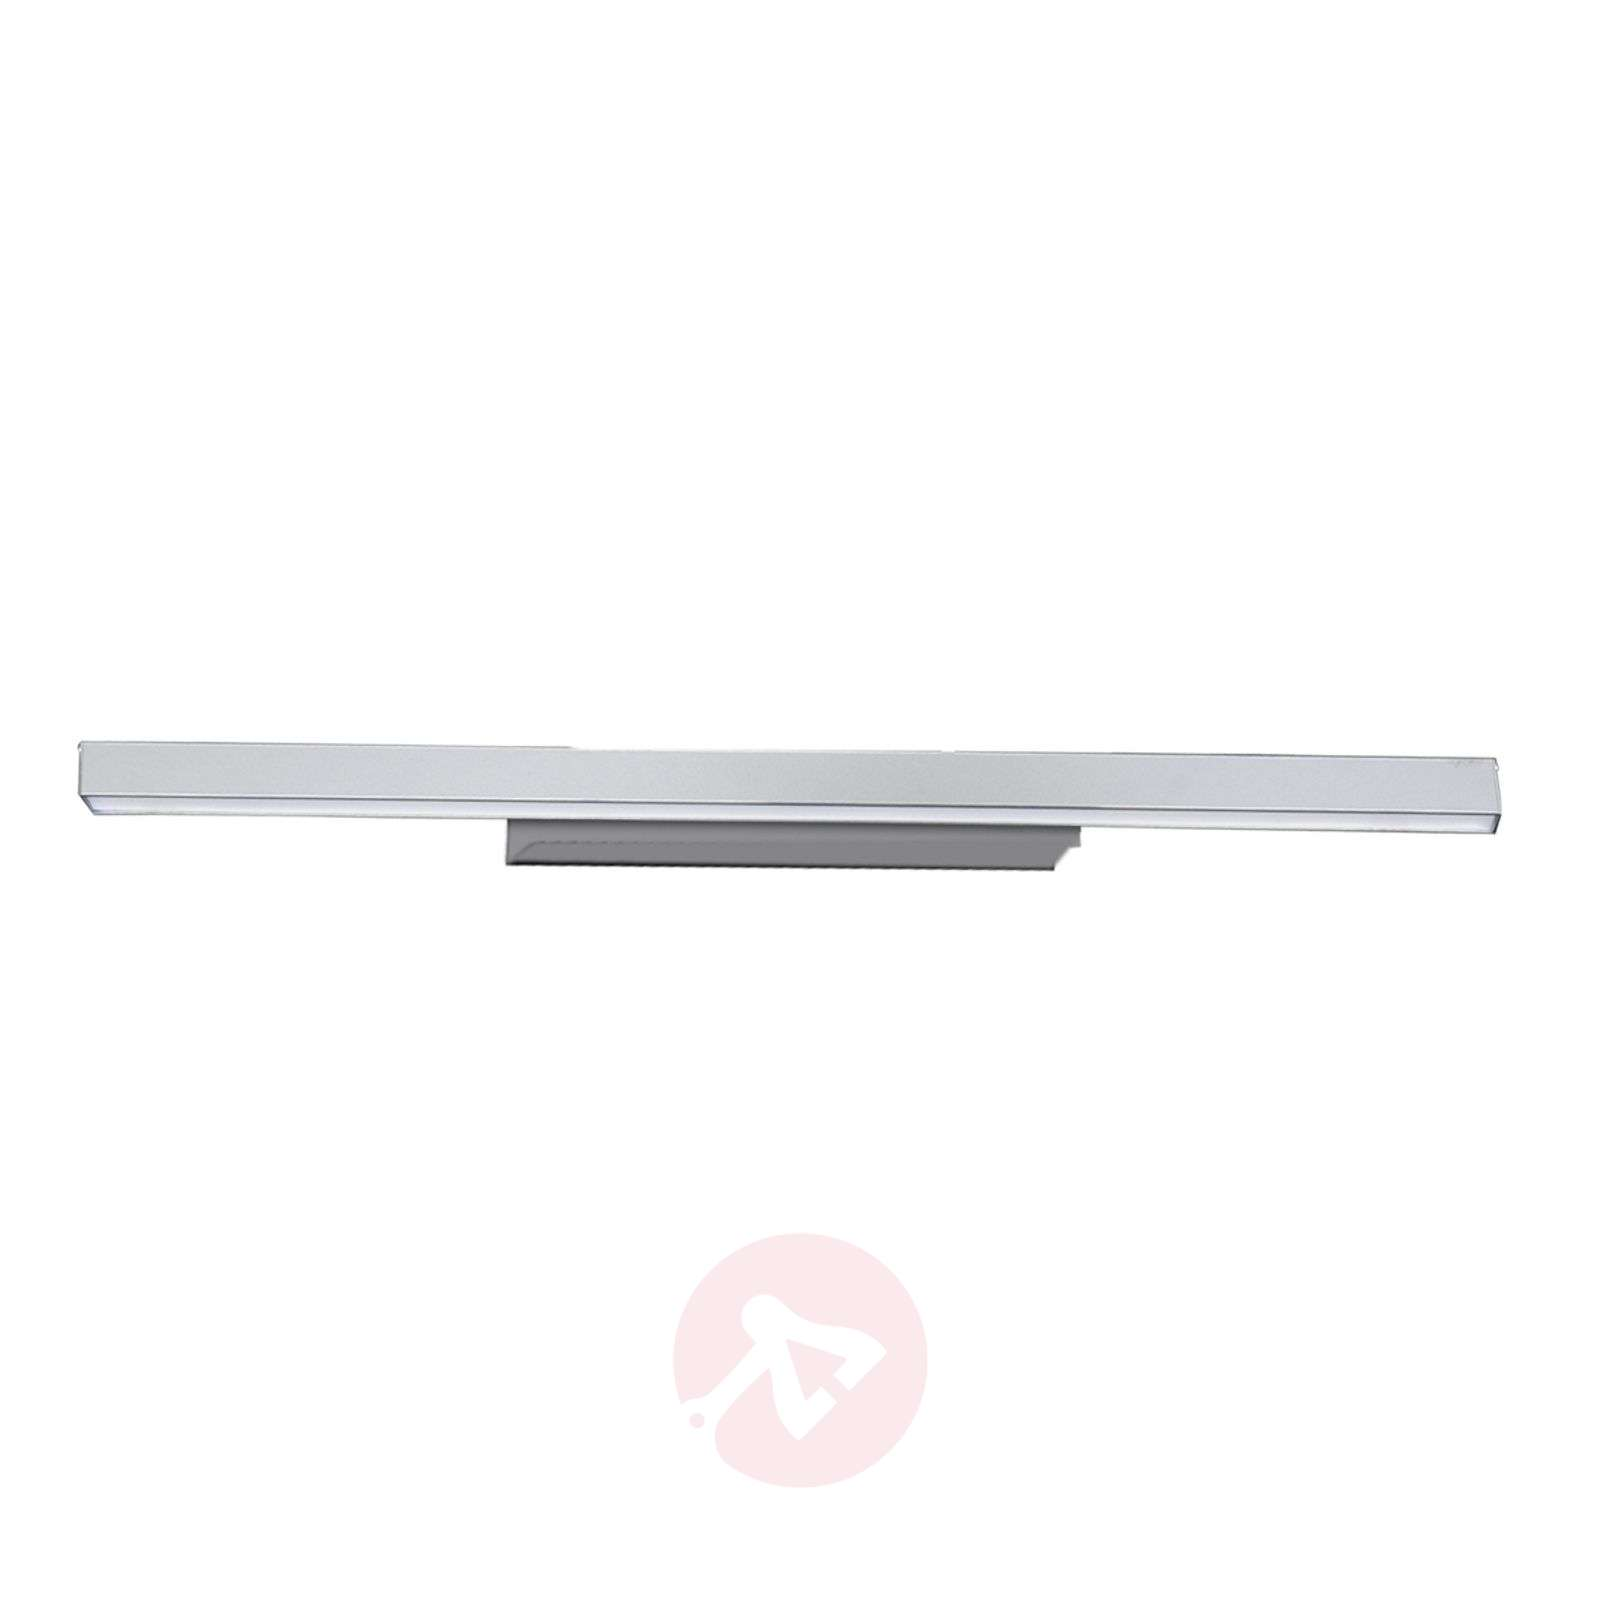 Applique aluminium LED NILA-7516018-01